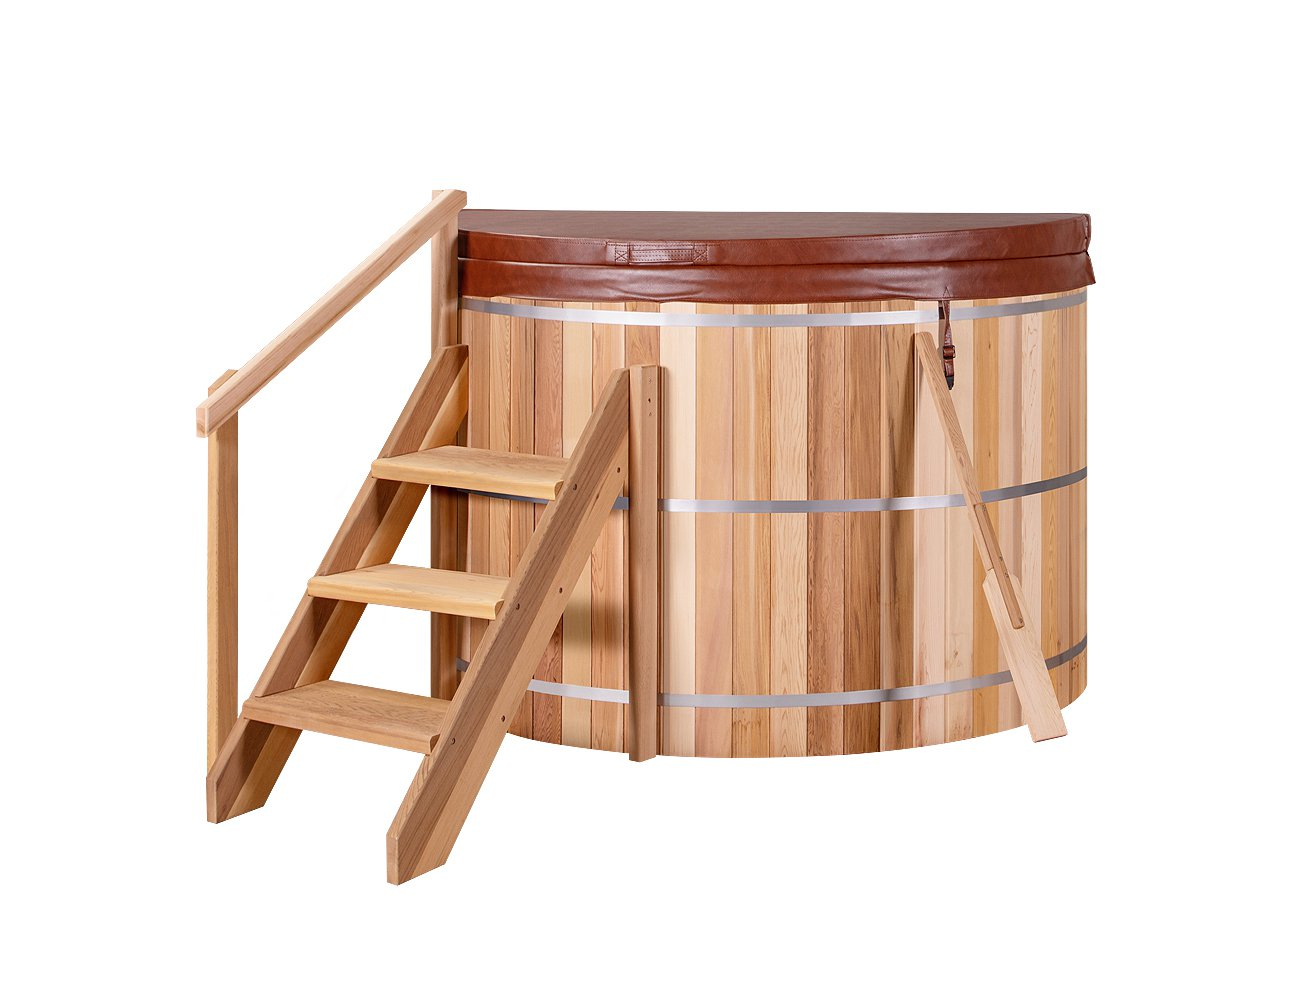 1.8m Wood Fired Hot Tub - Assembly Included